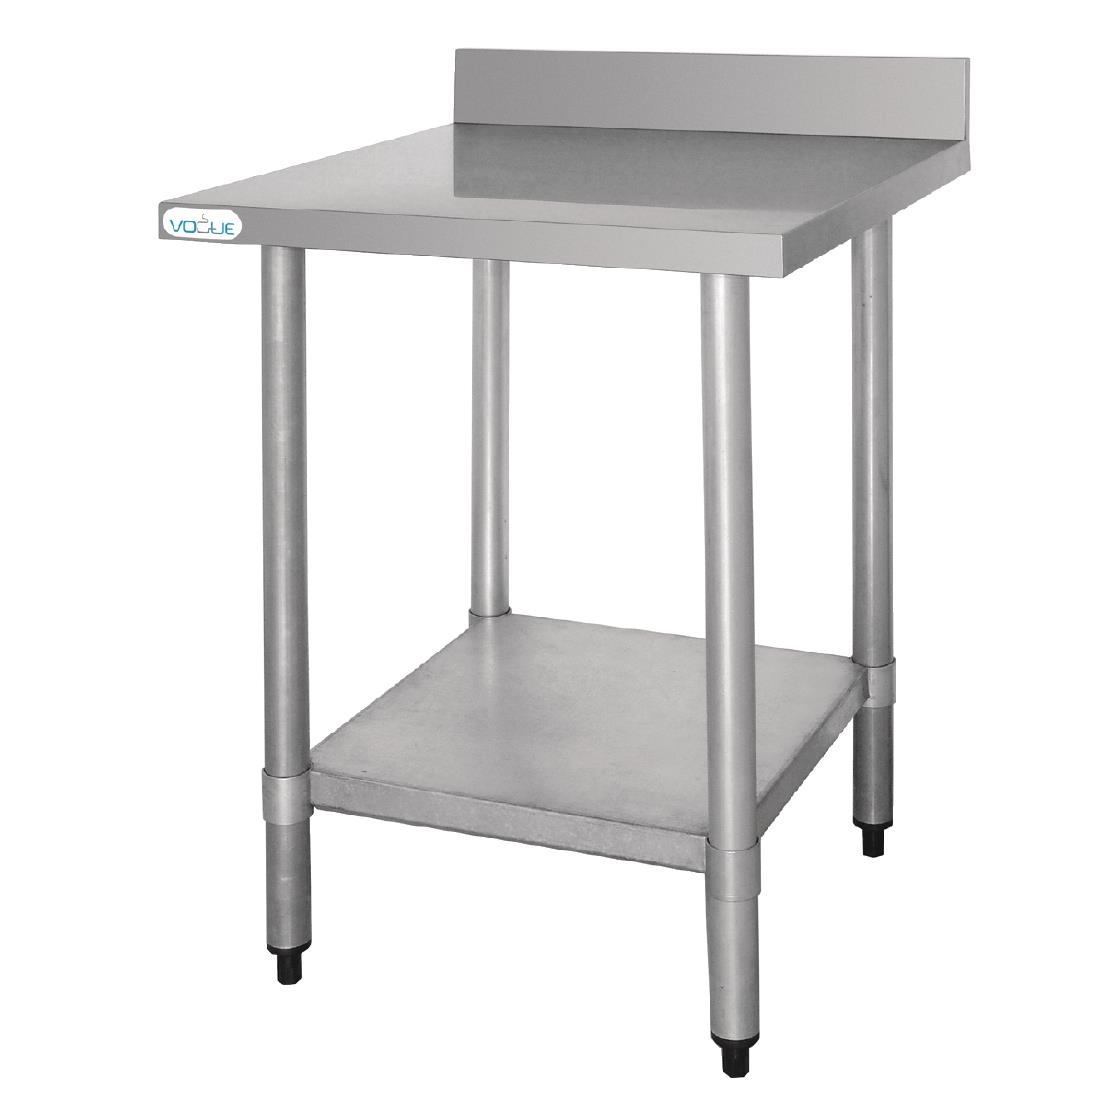 Stainless steel prep table kitchen prep table ikea elegant stainless steel prep table with - Commercial kitchen tables on wheels ...